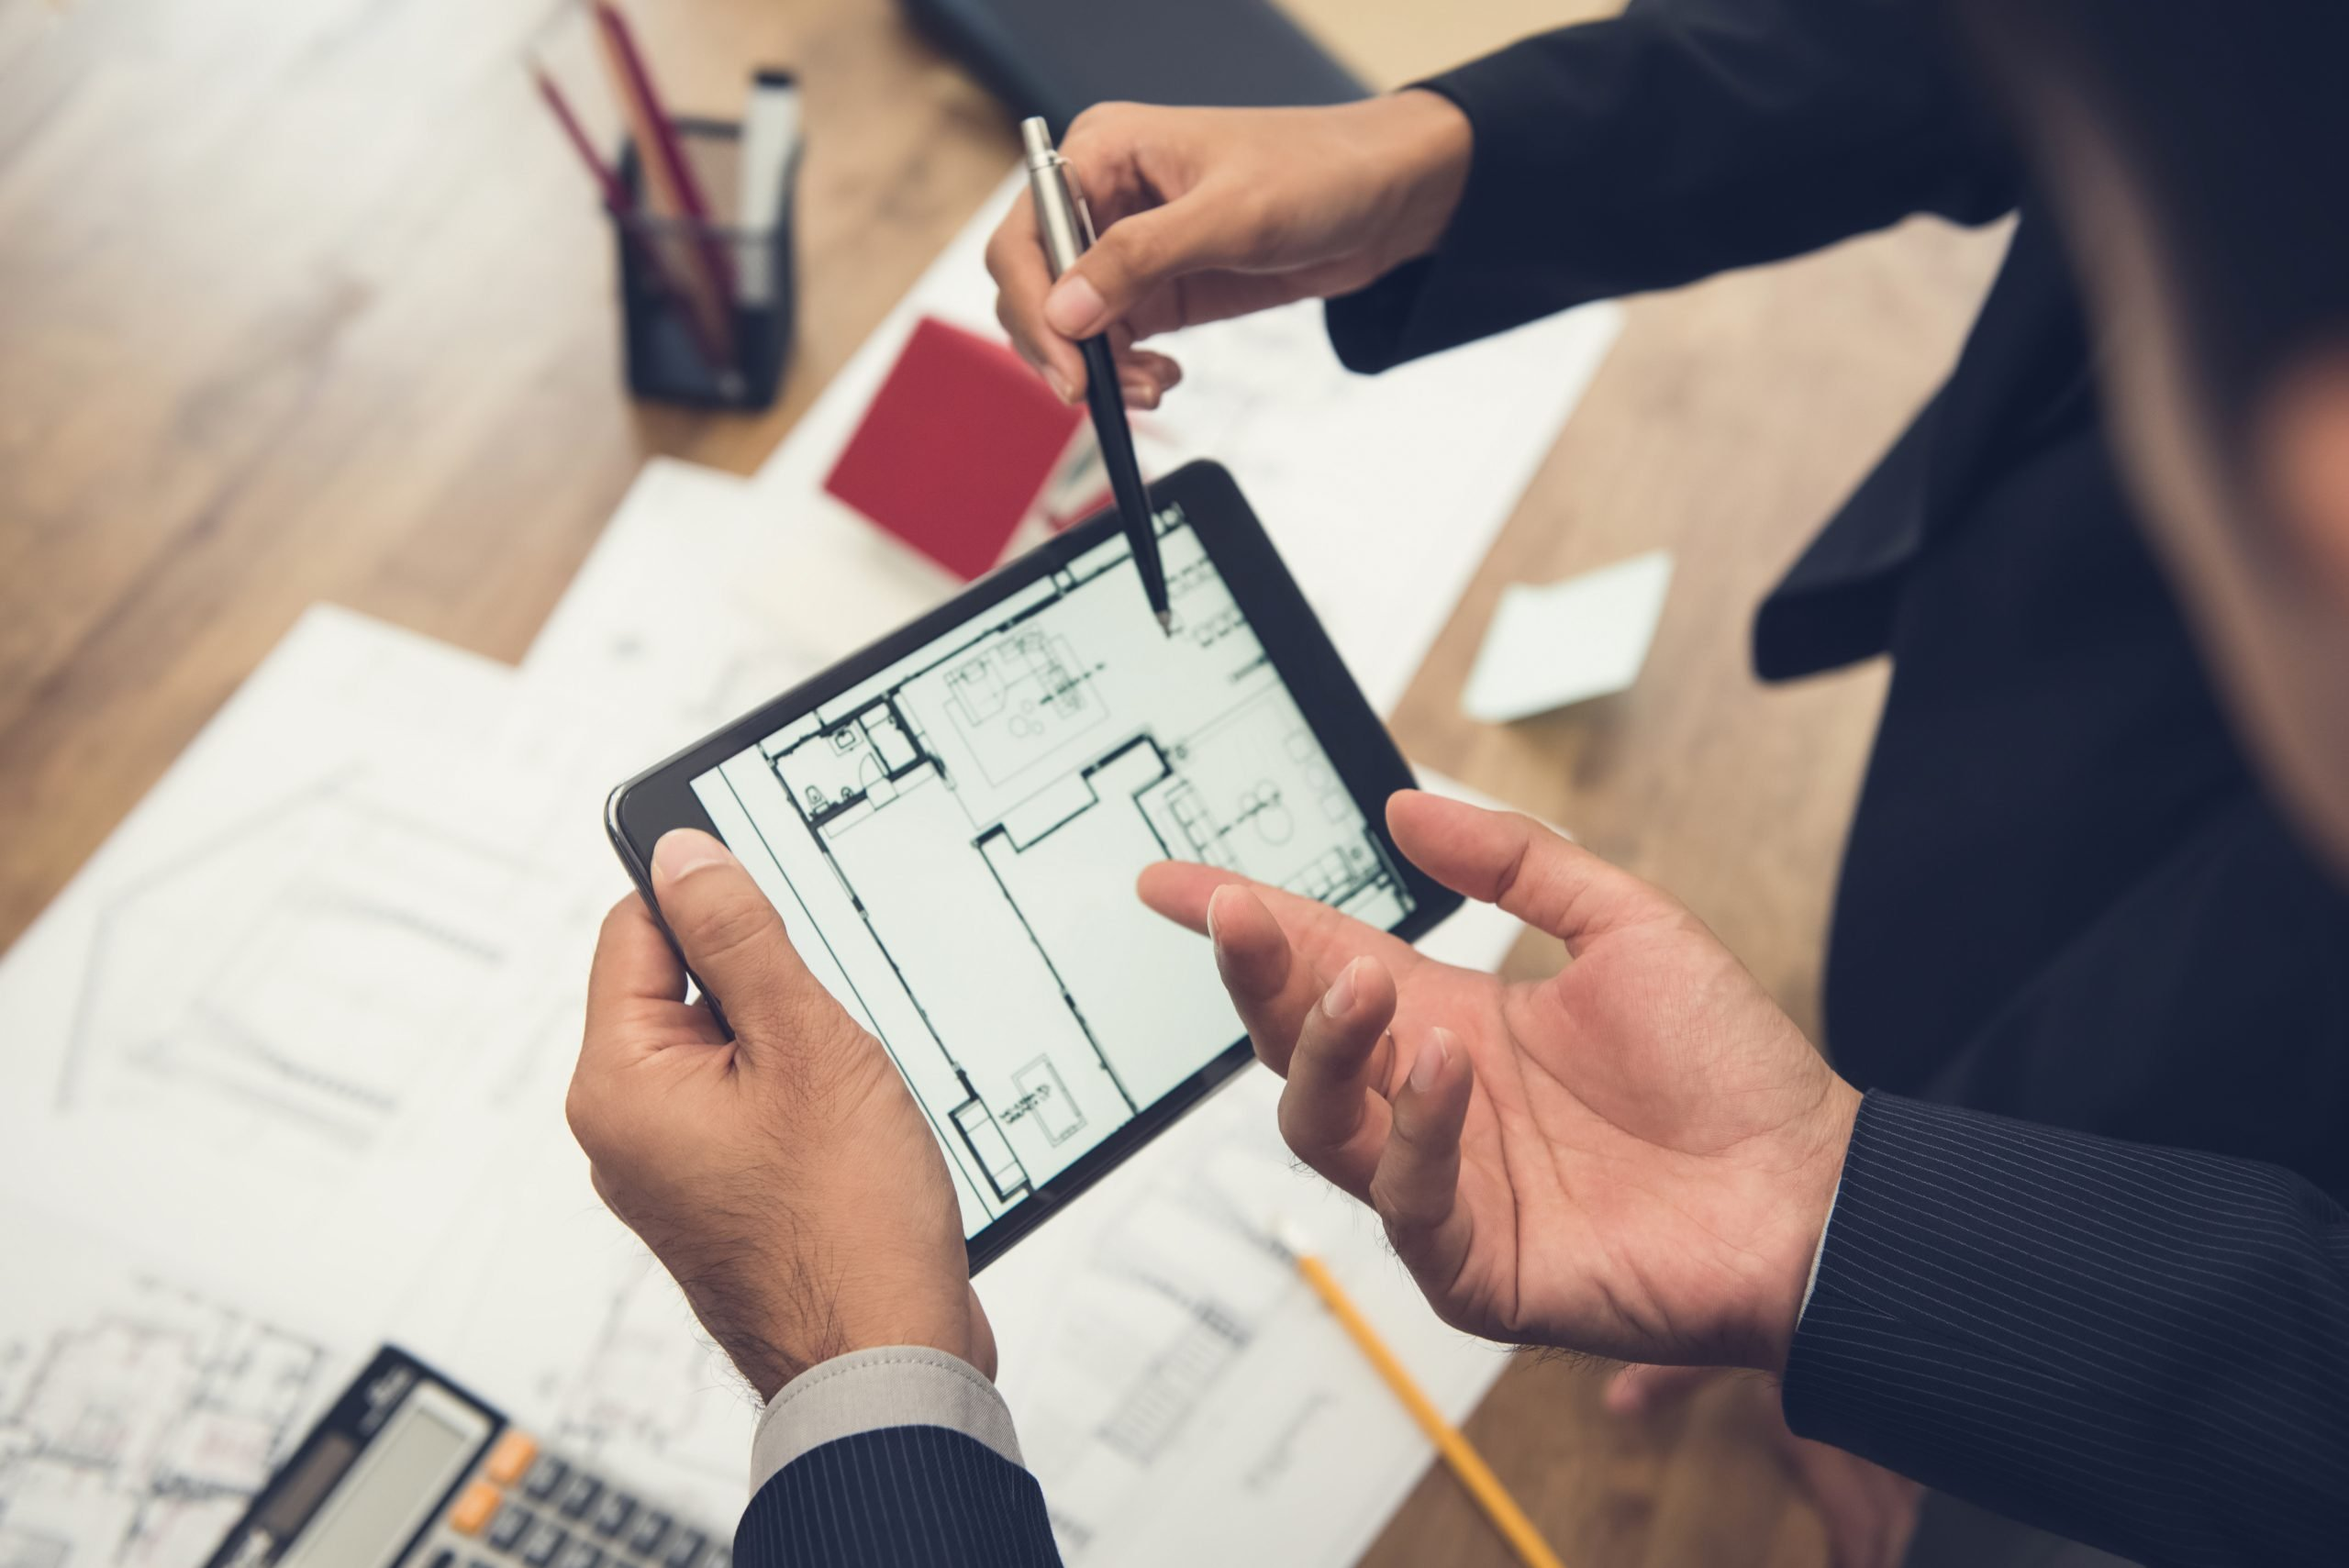 Project planning with blueprints